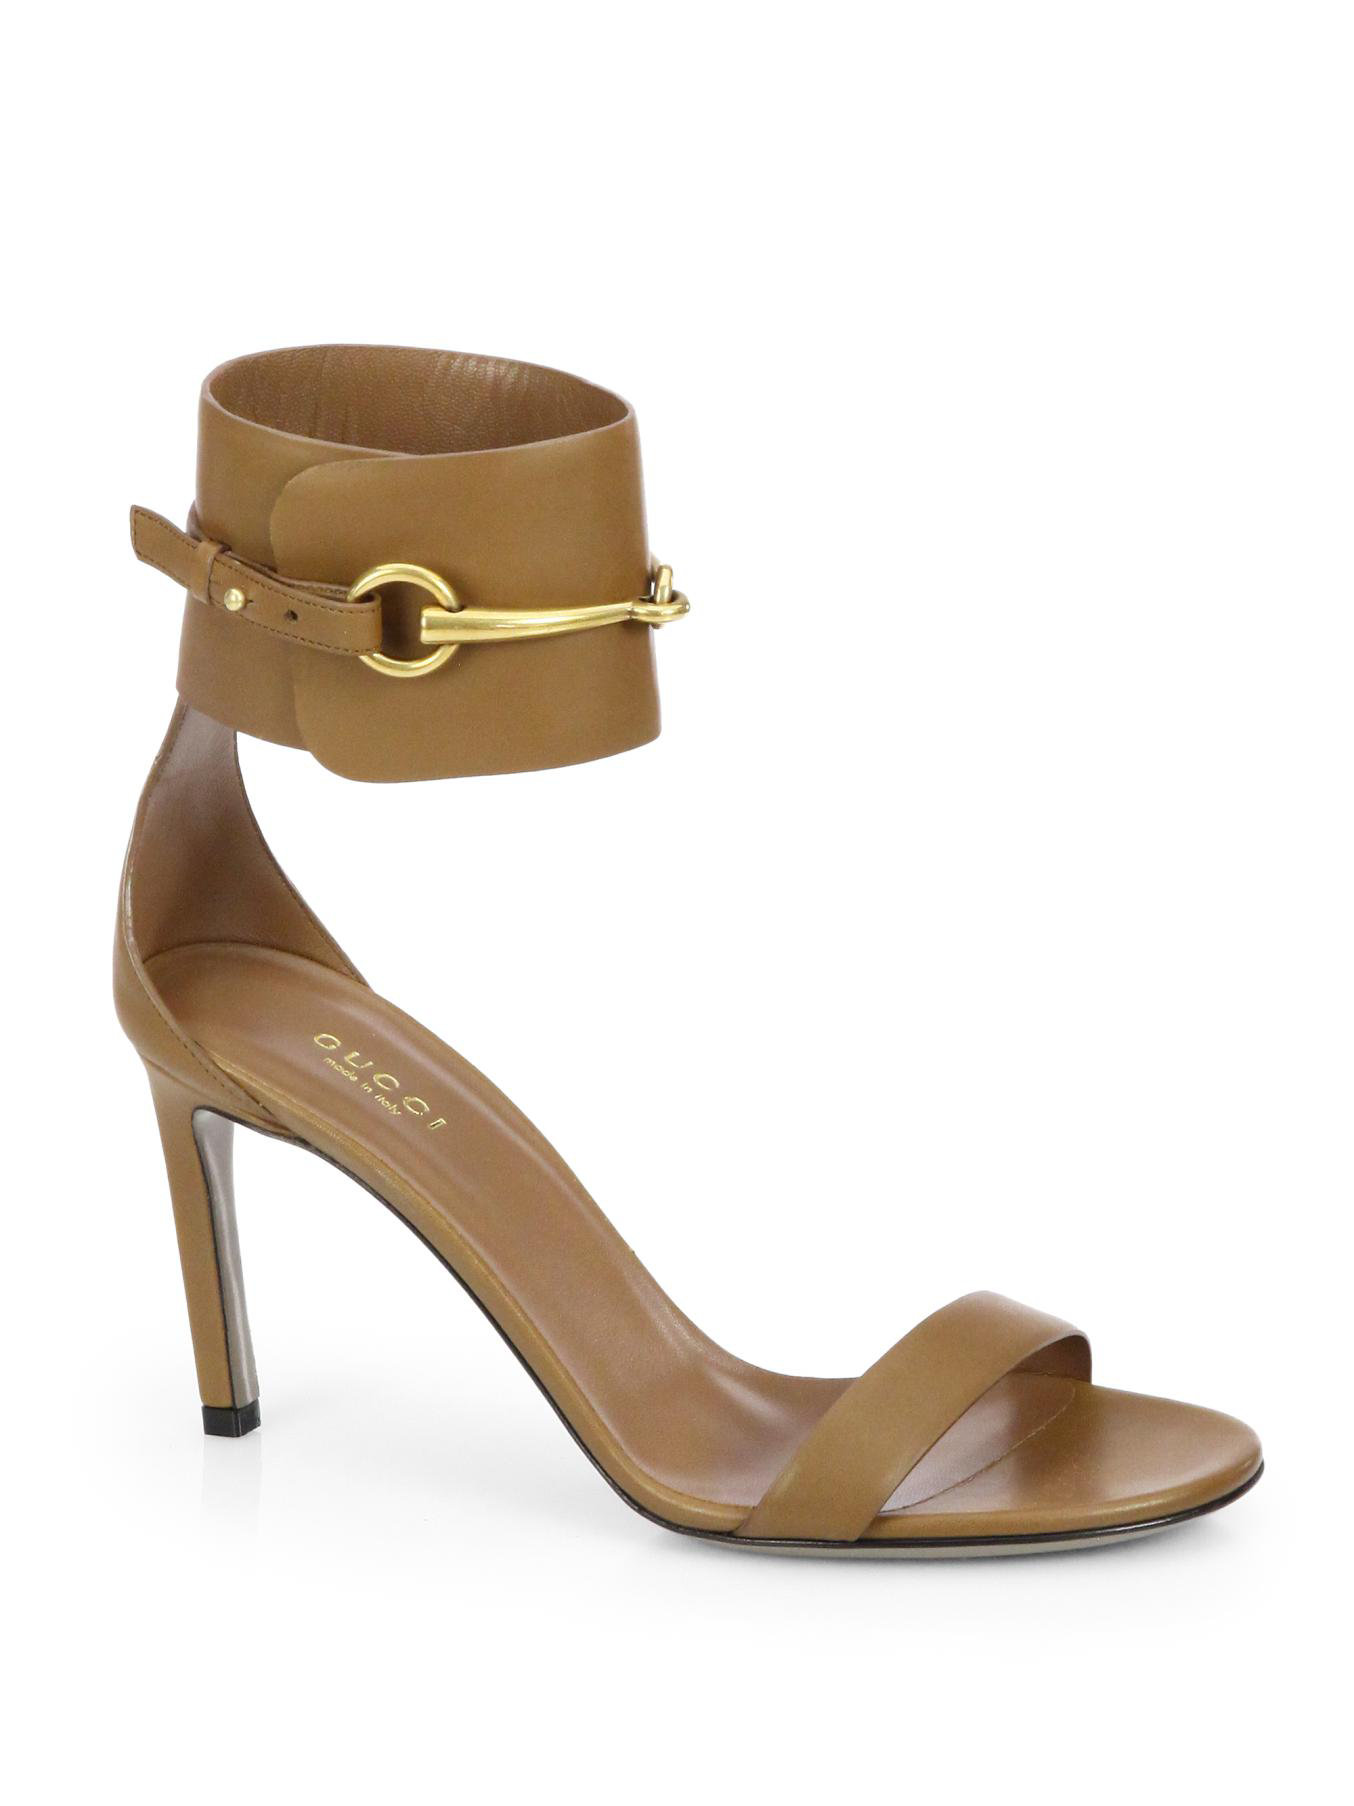 a4bb9b23cd37b Lyst - Gucci Ursula Leather Horsebit Sandals in Brown